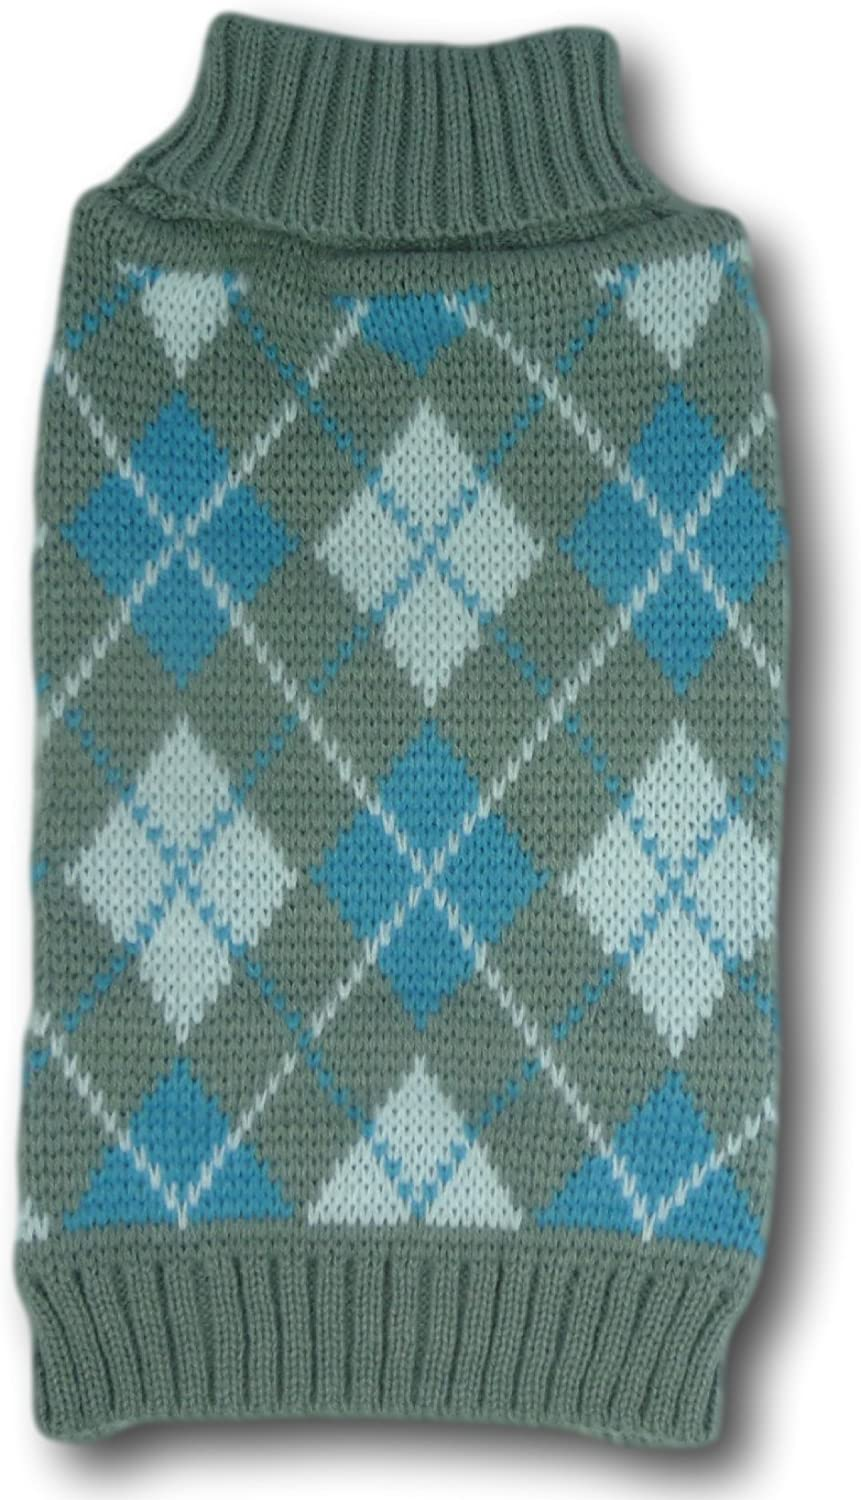 Cara Mia Dogwear Grey and Light Blue Argyle Jumper Sweater teacup to small breed dogs